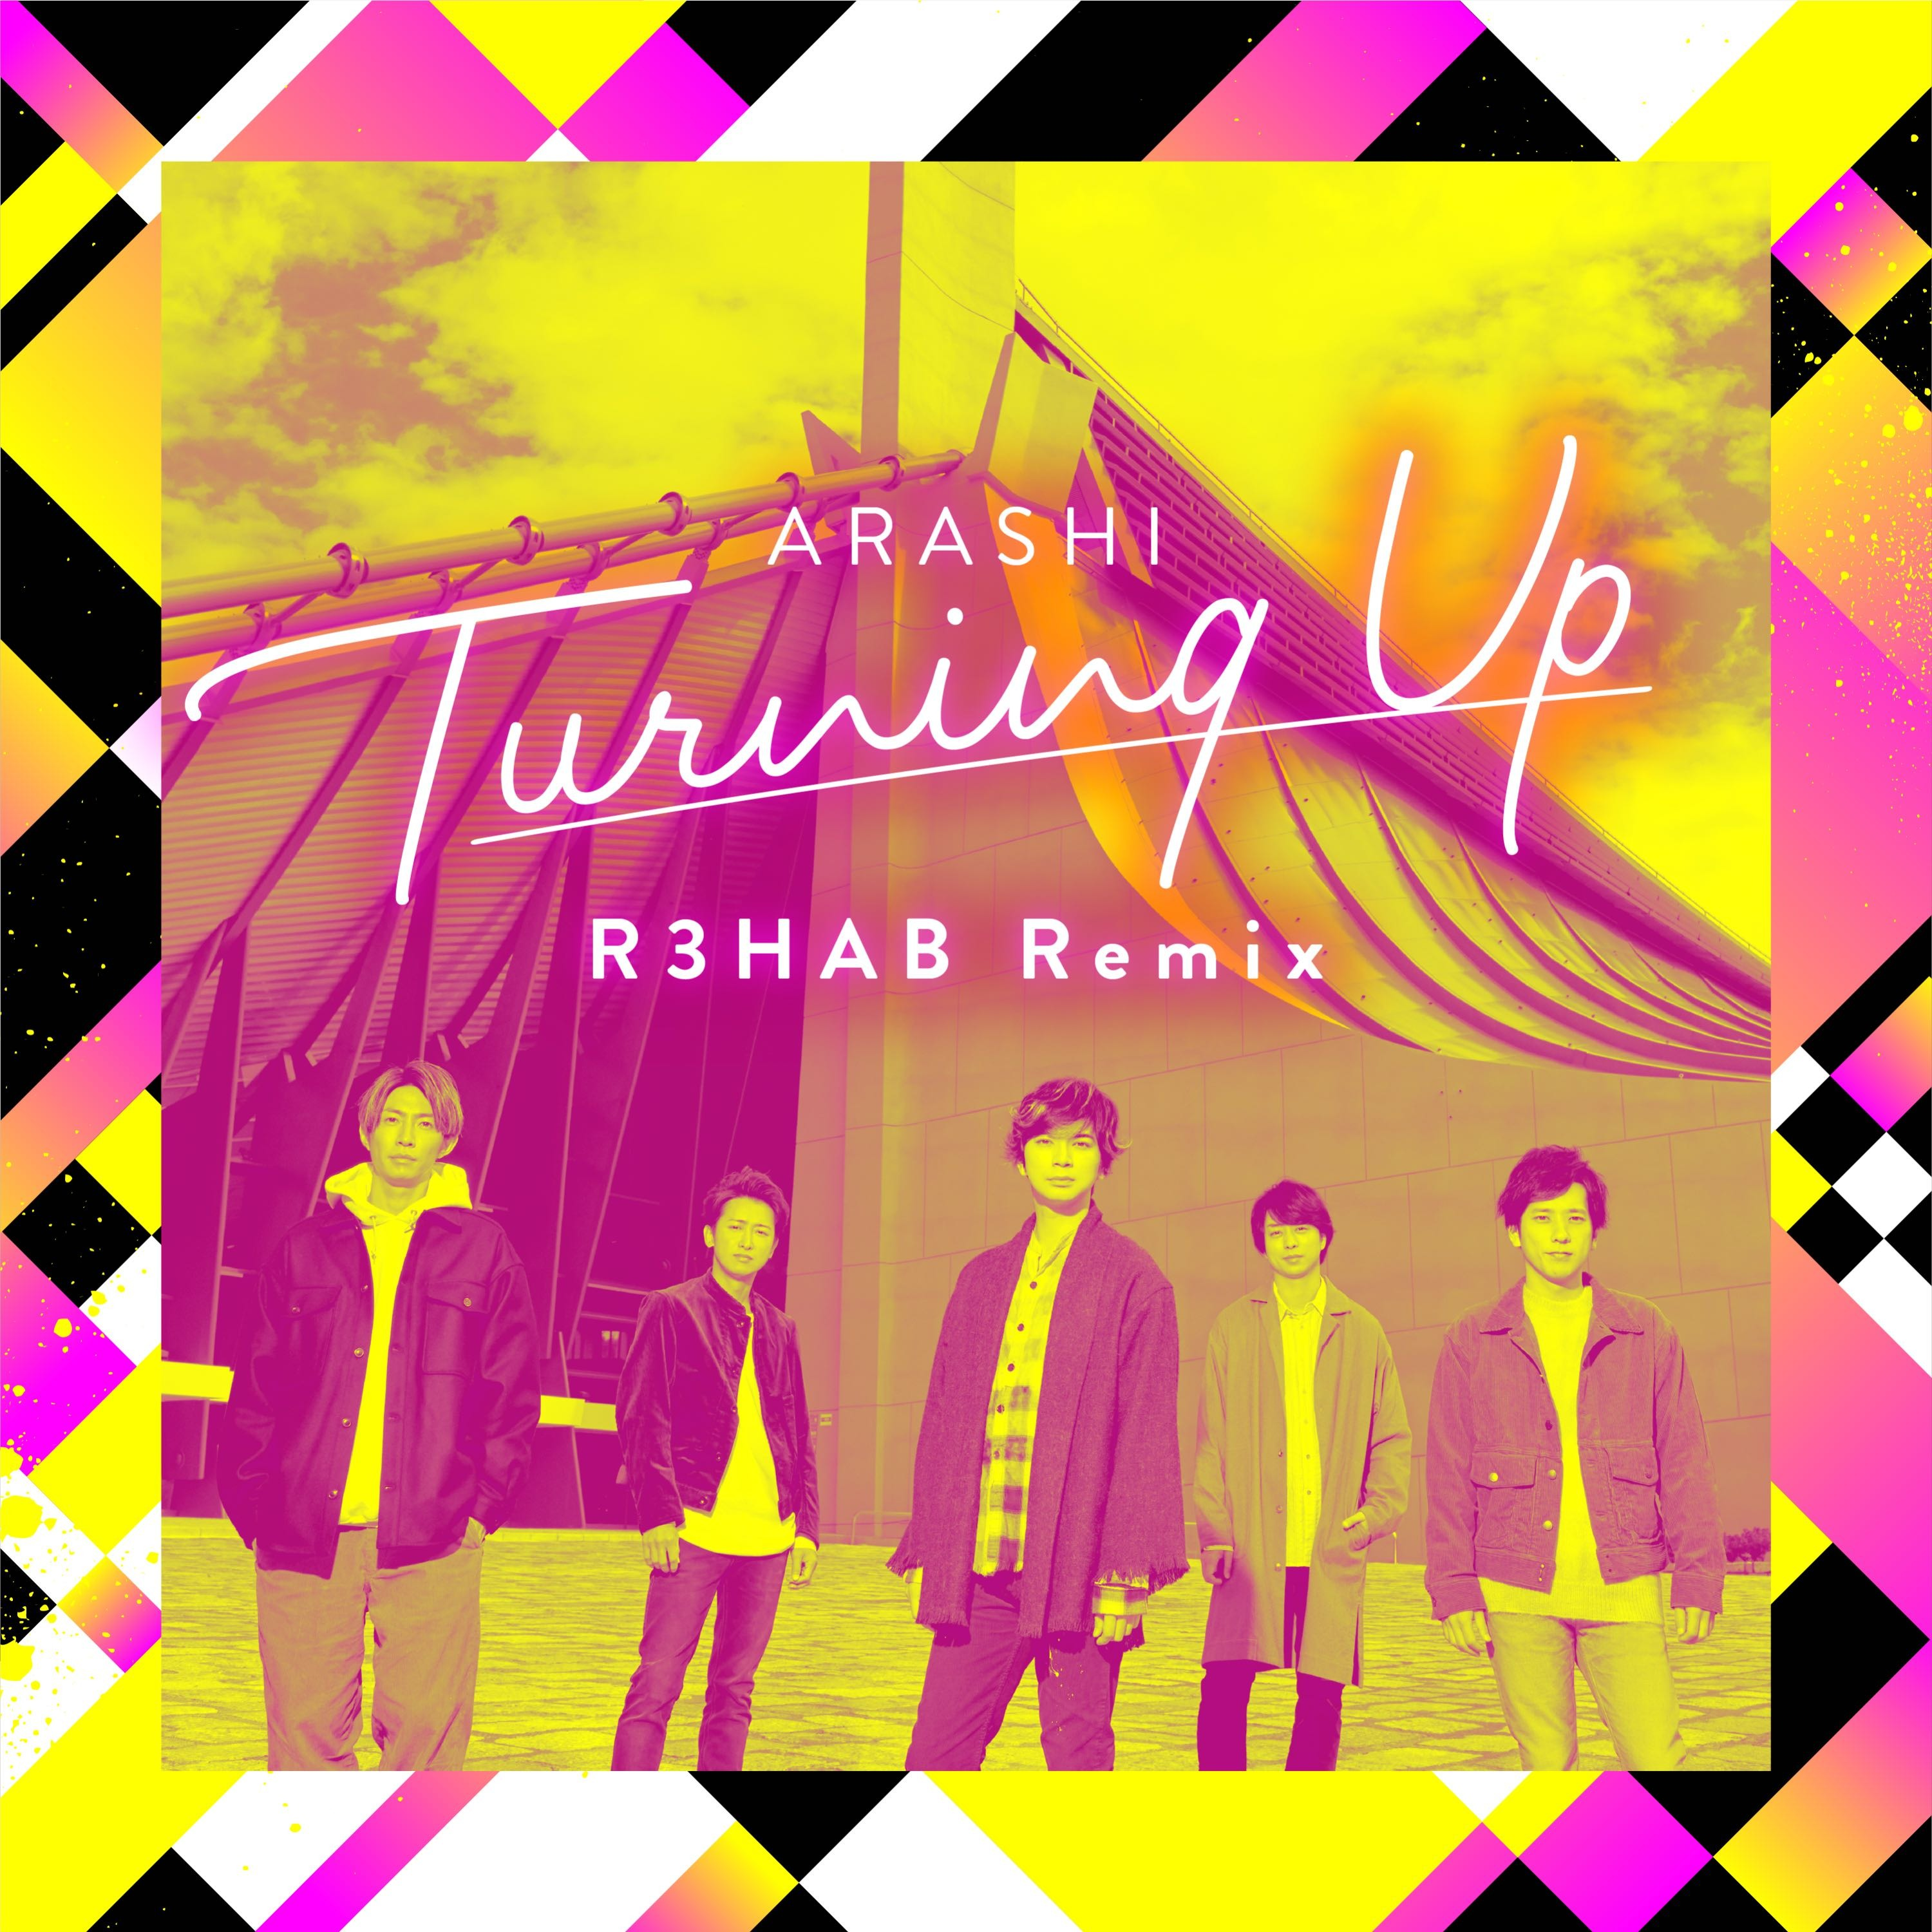 Watch the Turning Up (R3hab remix) video